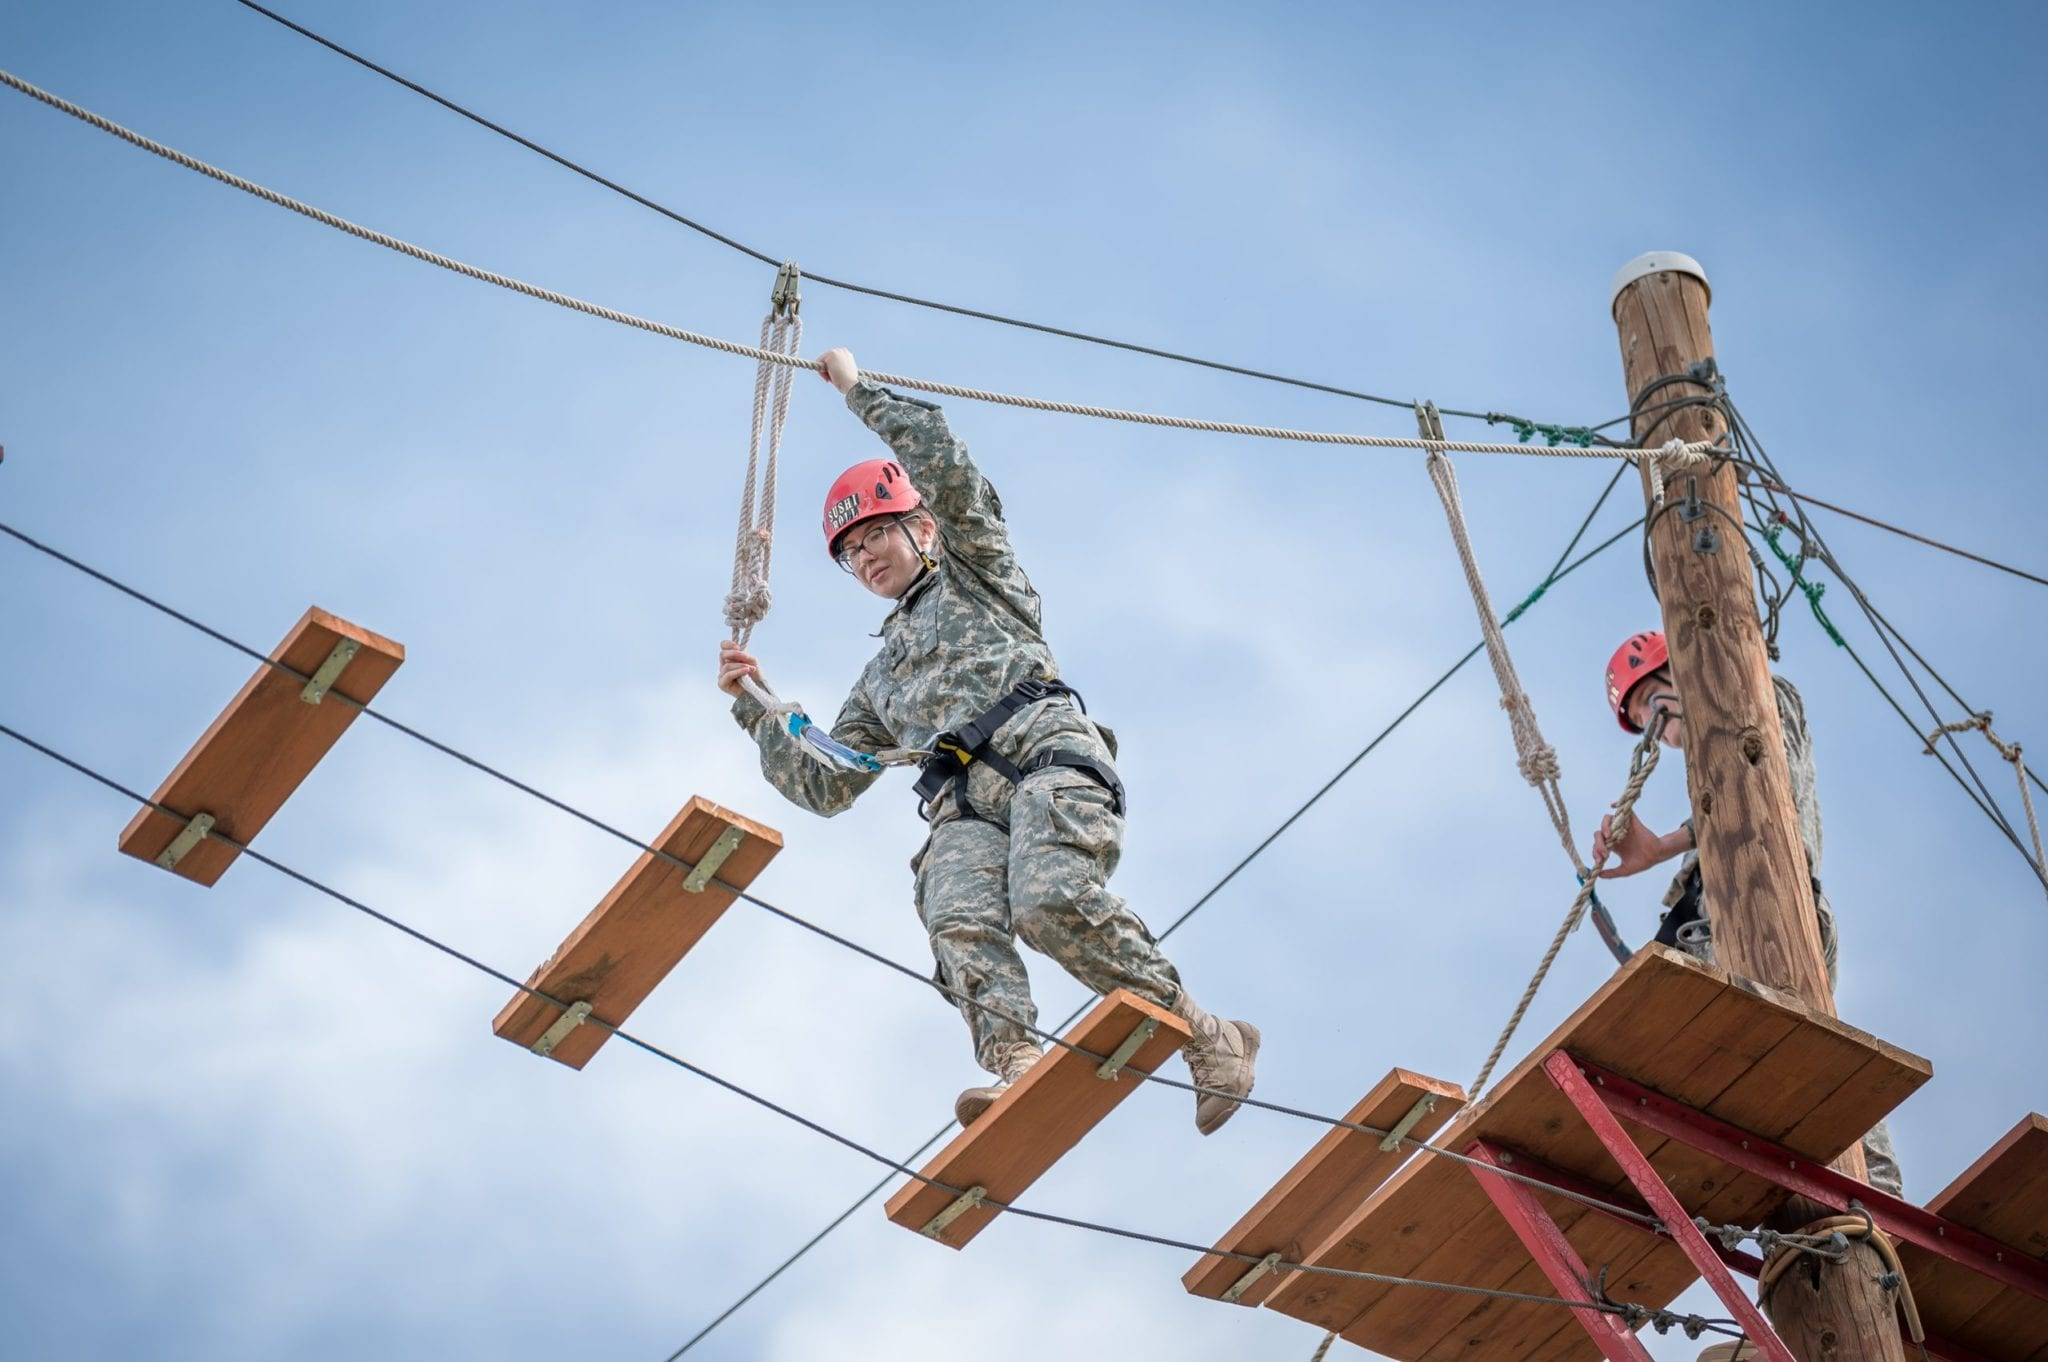 cadet on high ropes course